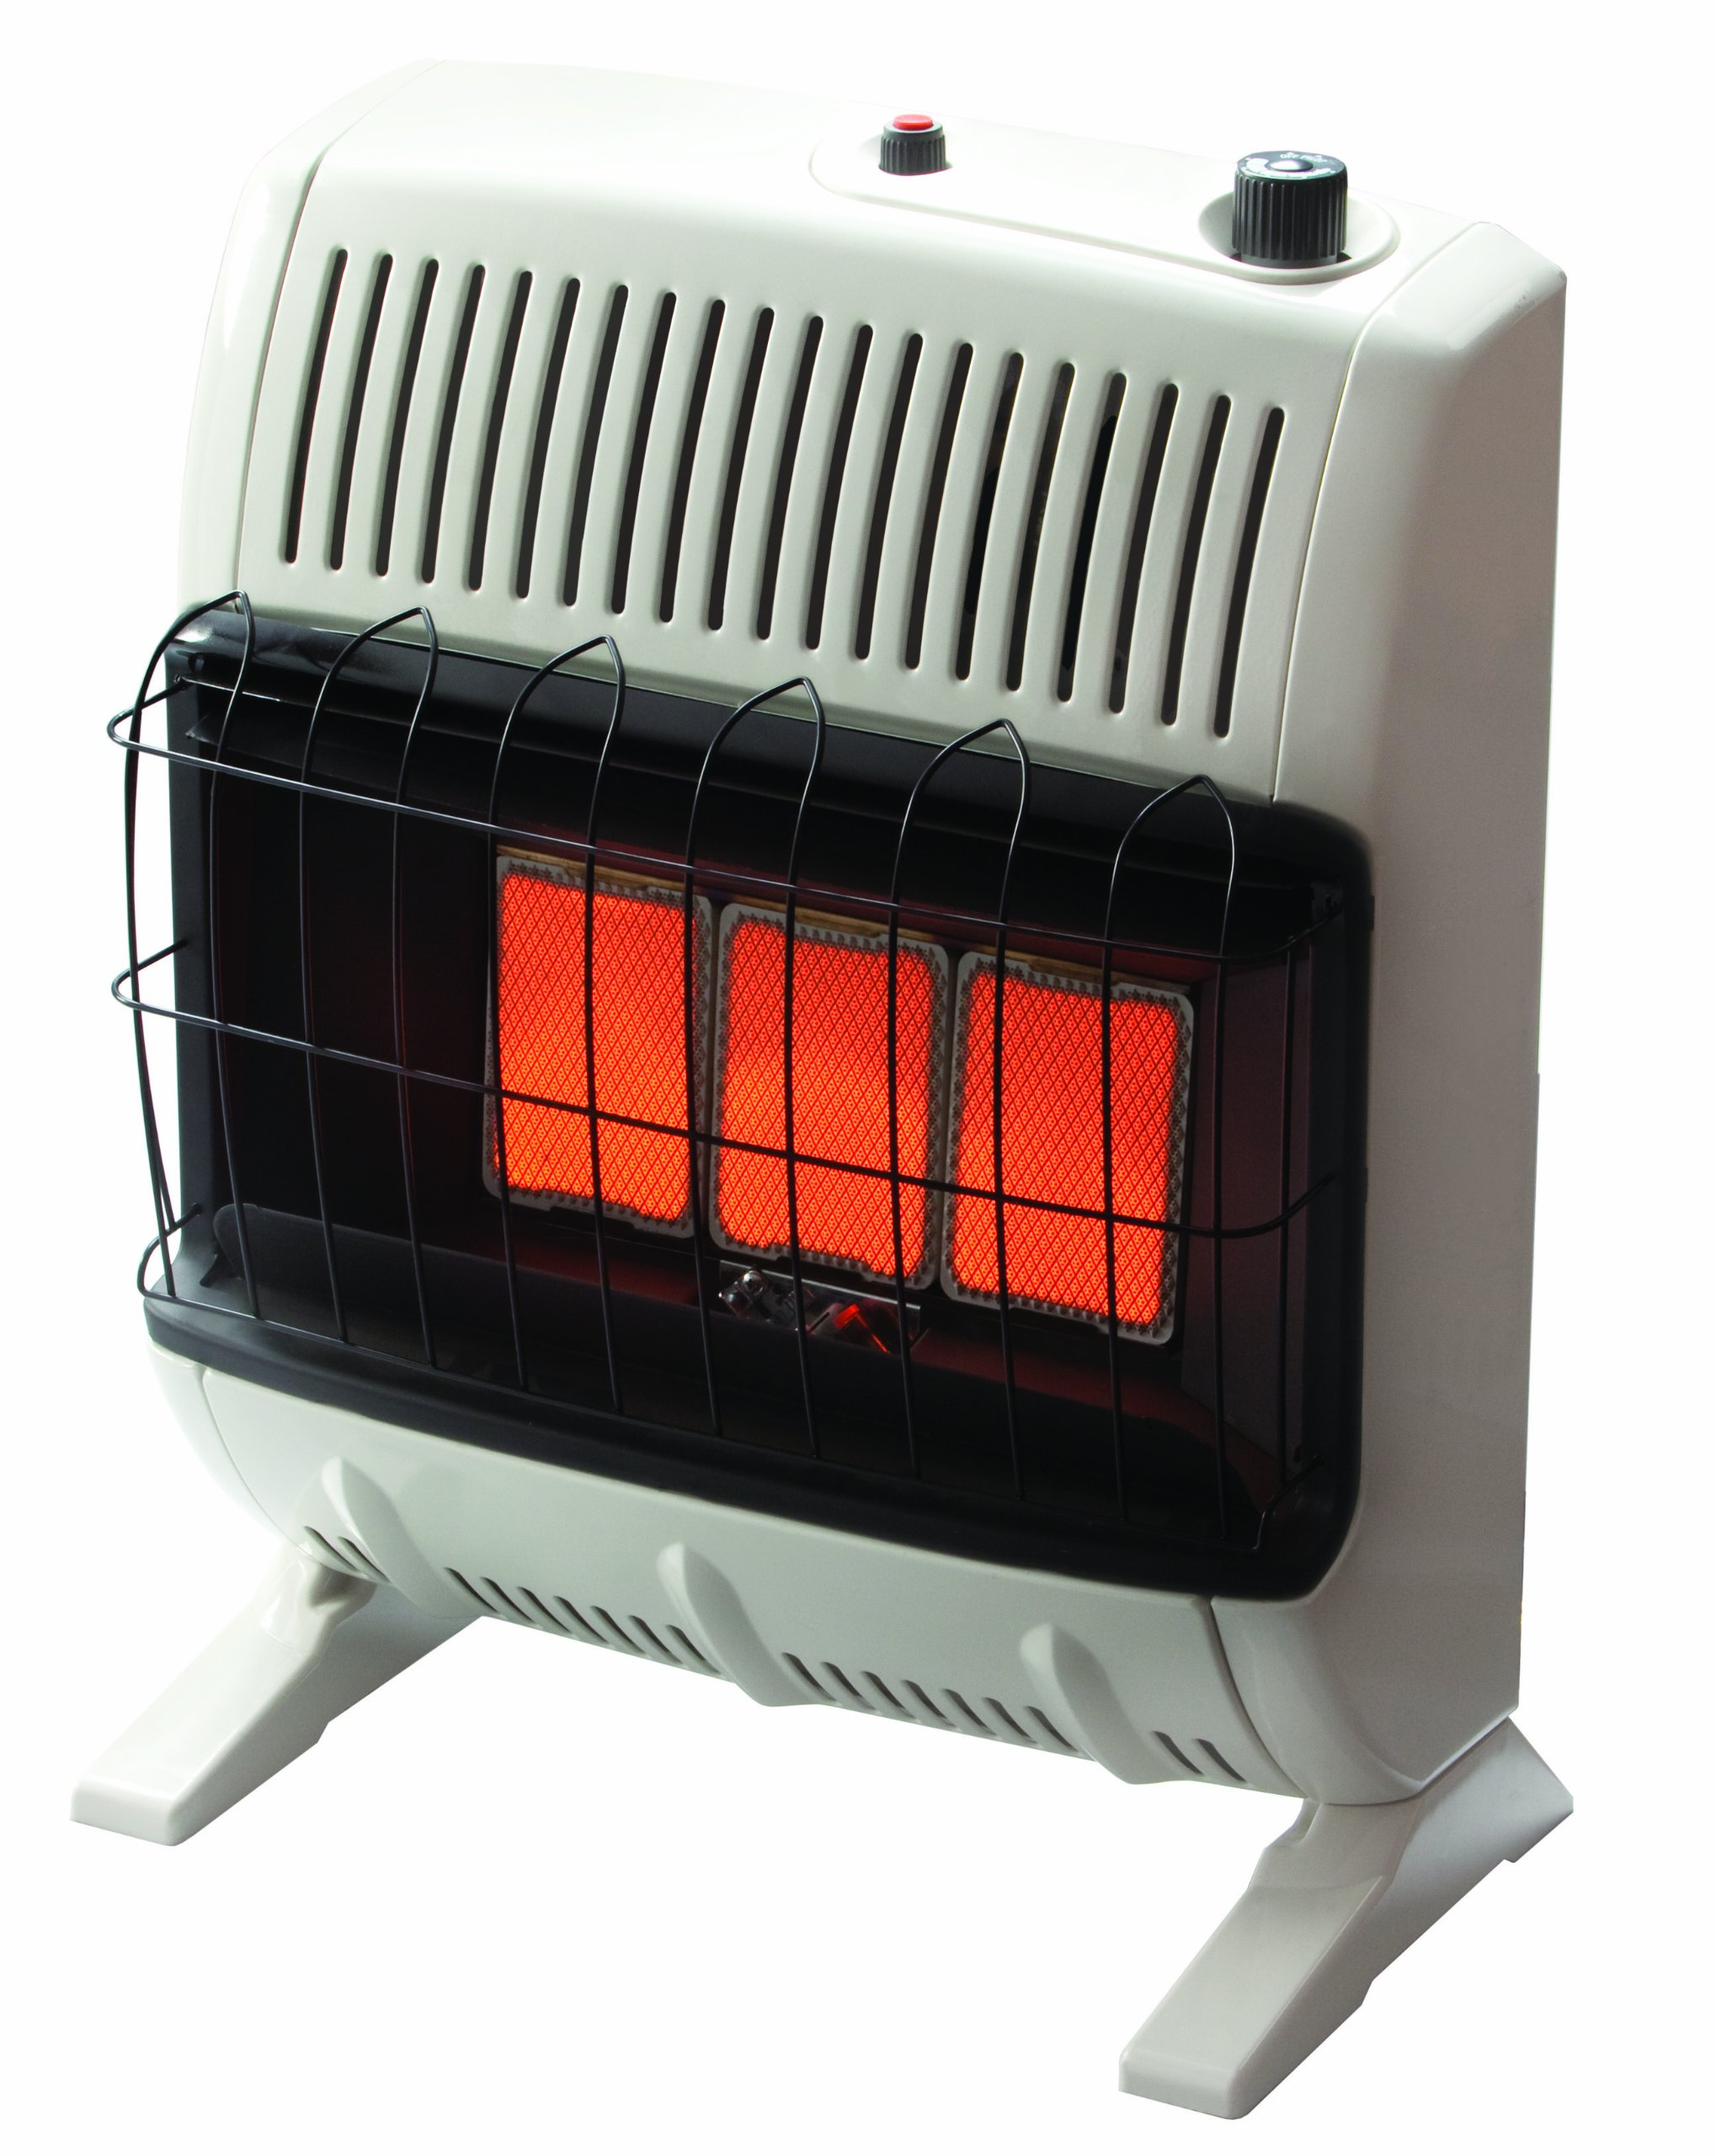 Heatstar By Enerco F156050 Ventfree Infrared Propane Heater with Thermostat HSVFR20LPBT, 20K